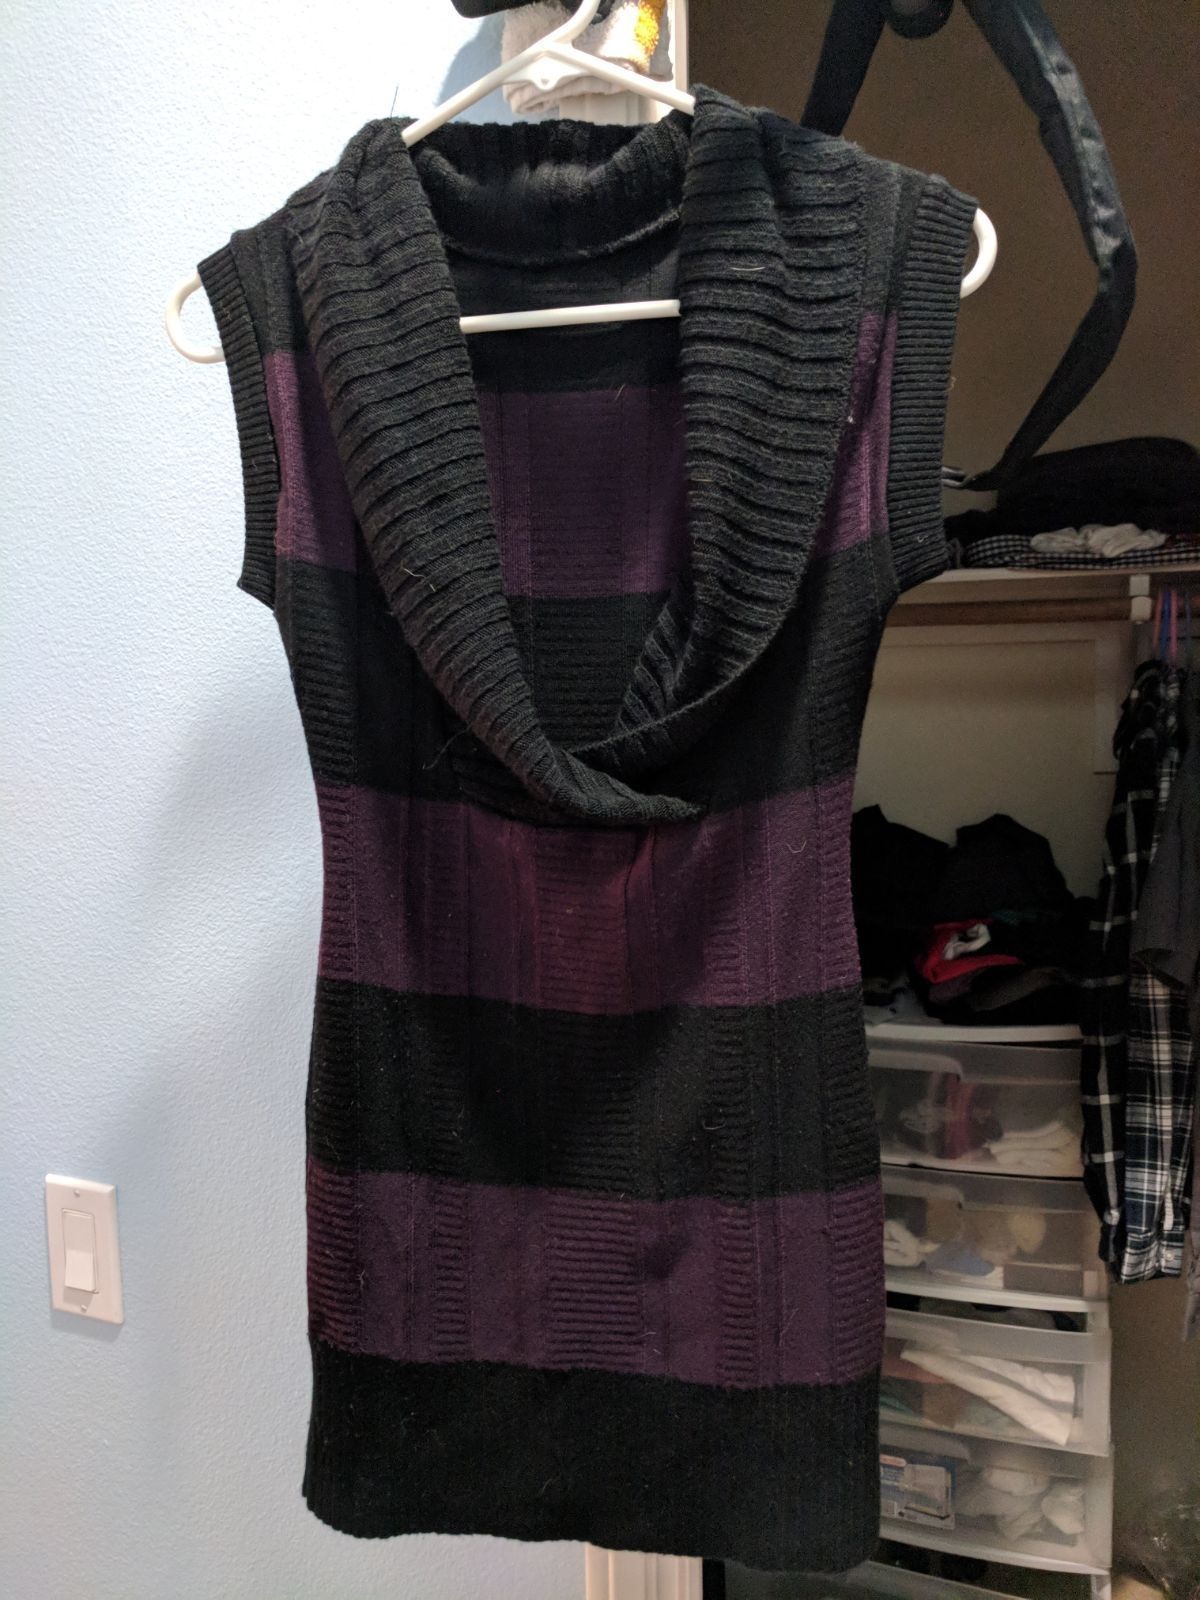 Black and Purple Sweater Dress - Mercari: BUY & SELL THINGS YOU LOVE